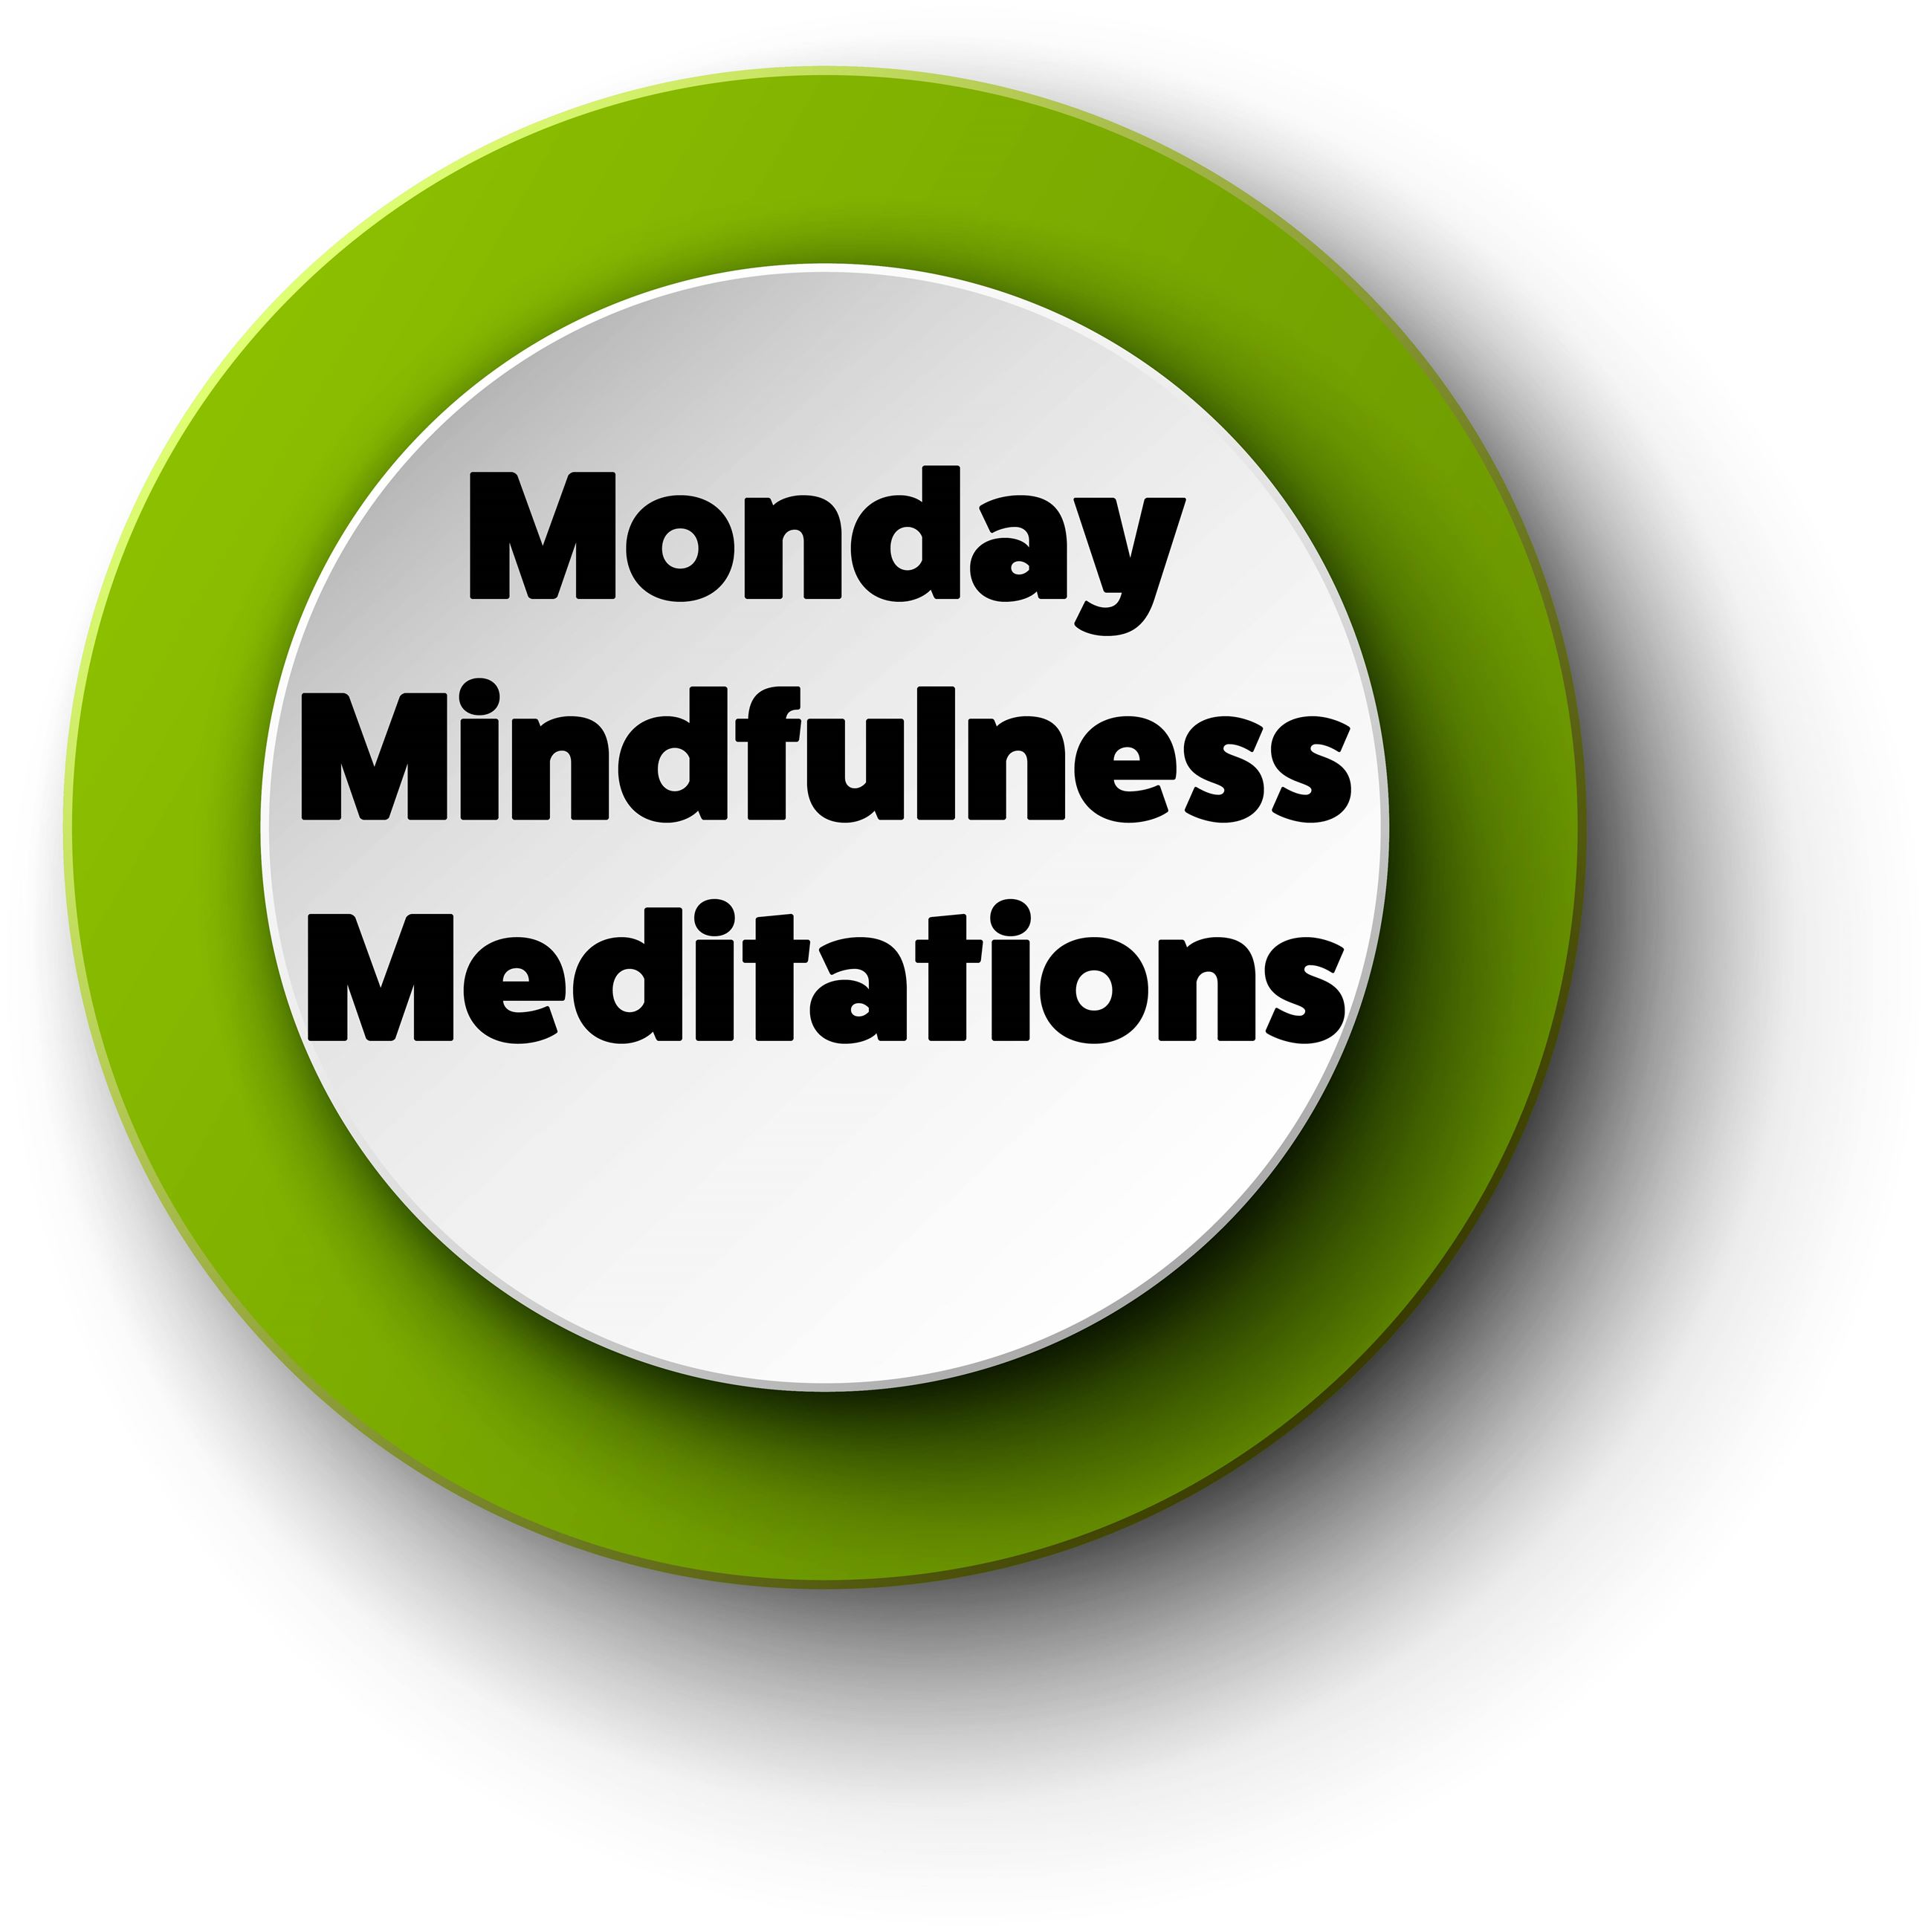 Monday Mindfulness Meditations